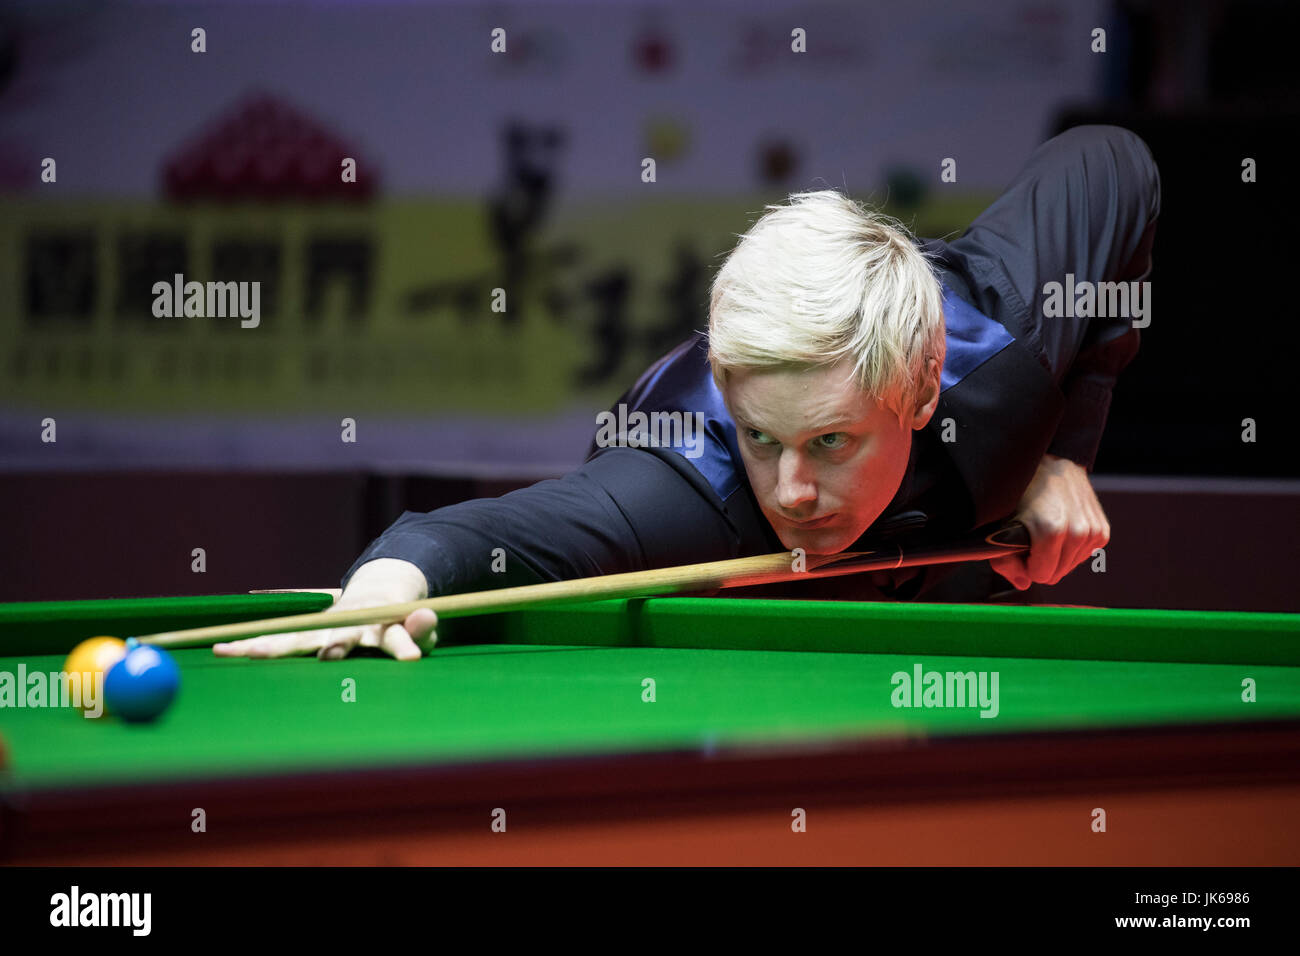 Hong Kong, Hong Kong. 22nd July 2017. Neil Robertson of Australia reacts during the semi-final match against Marco - Stock Image